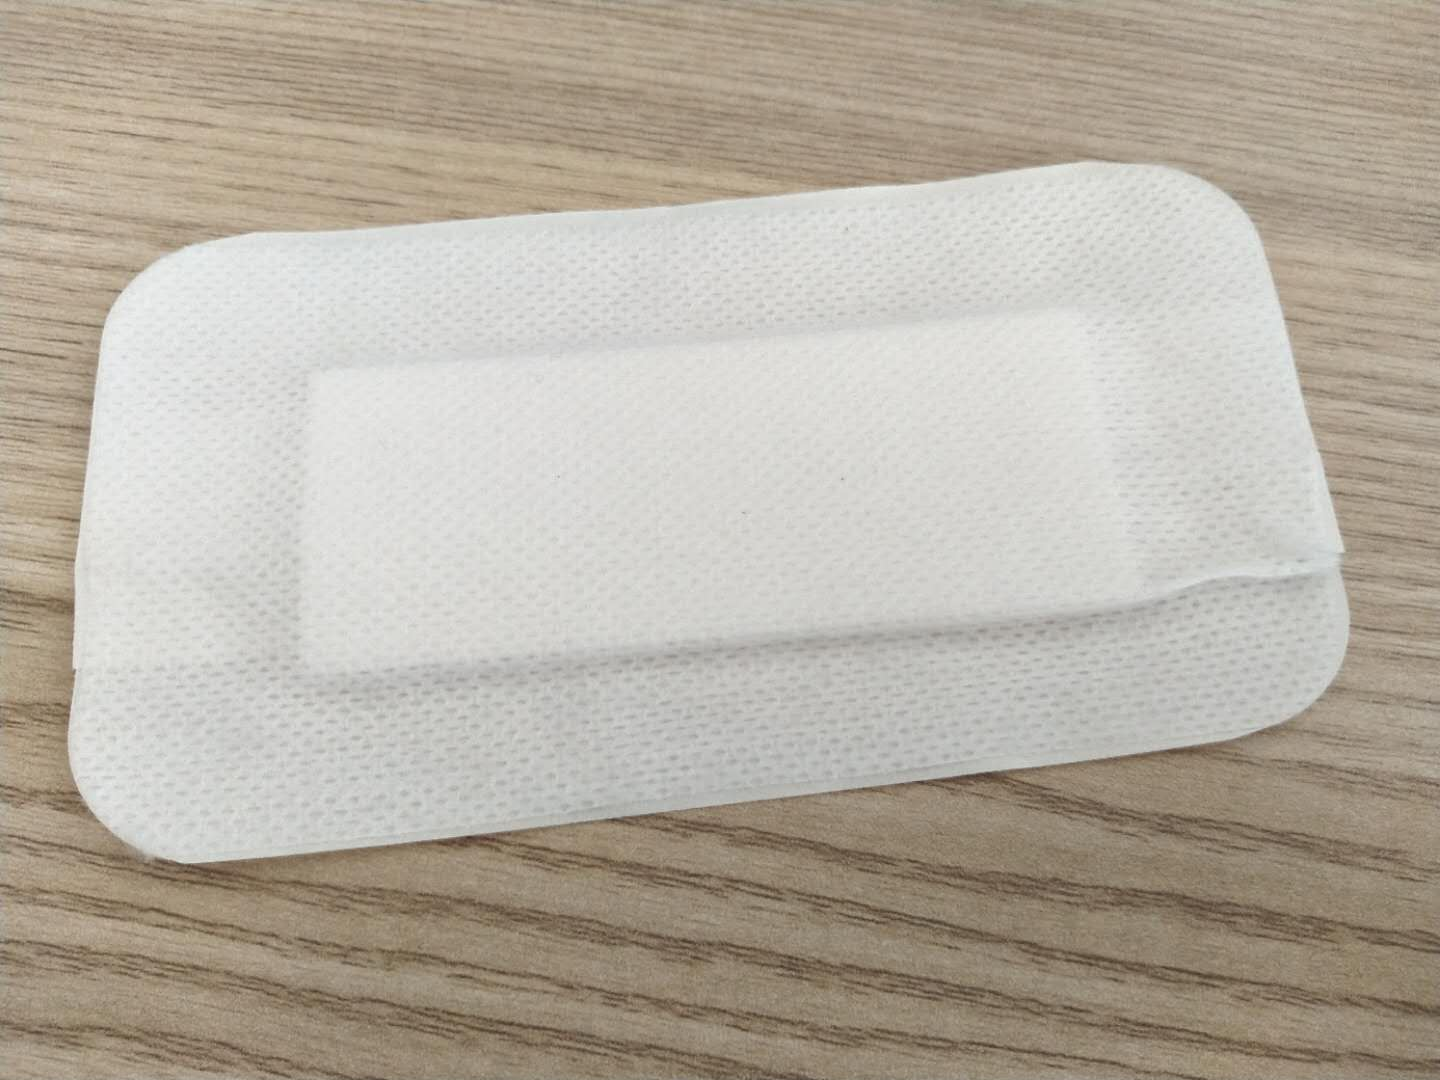 Wound care Independently packed wound dressing 15cmx8.5cm